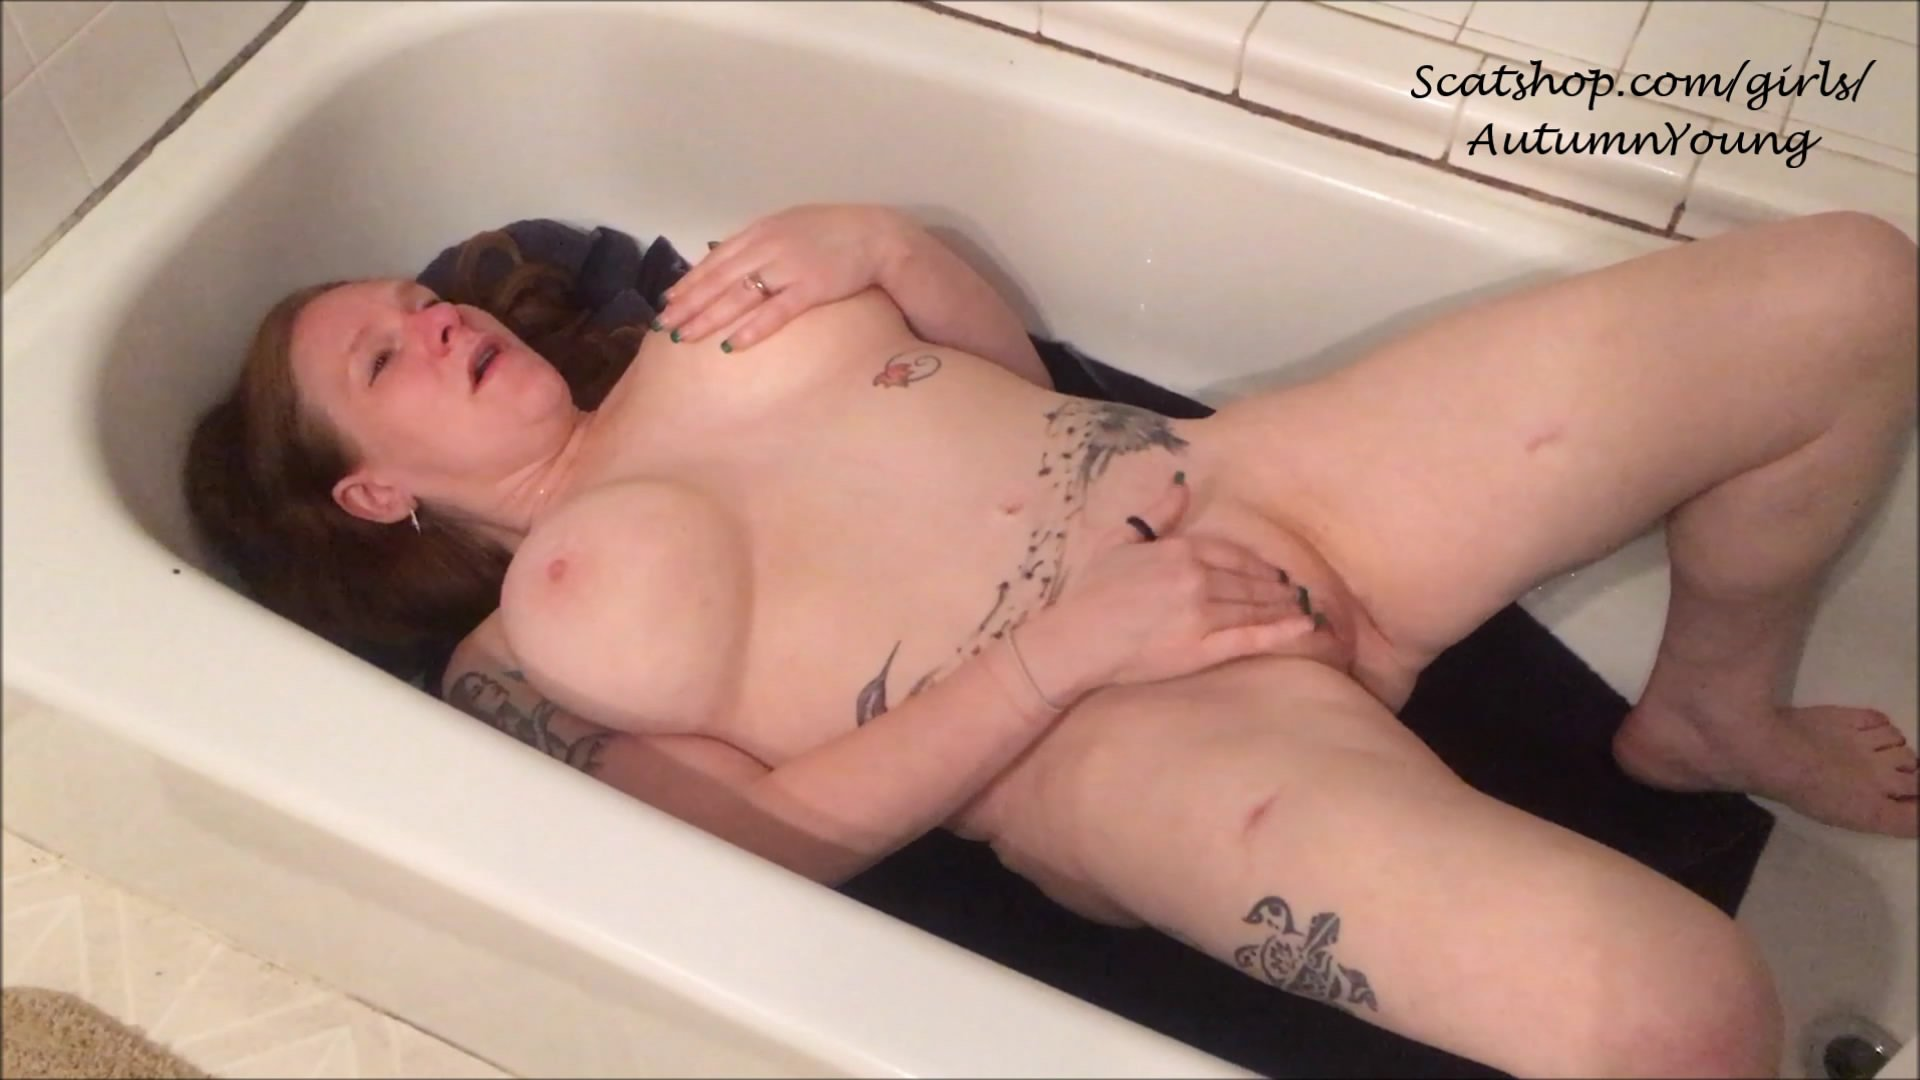 DADDY-Shit On ME So I Can CUM-PLEASE starring in video AutumnYoung ($9.99 ScatShop) – Toilet Slavery